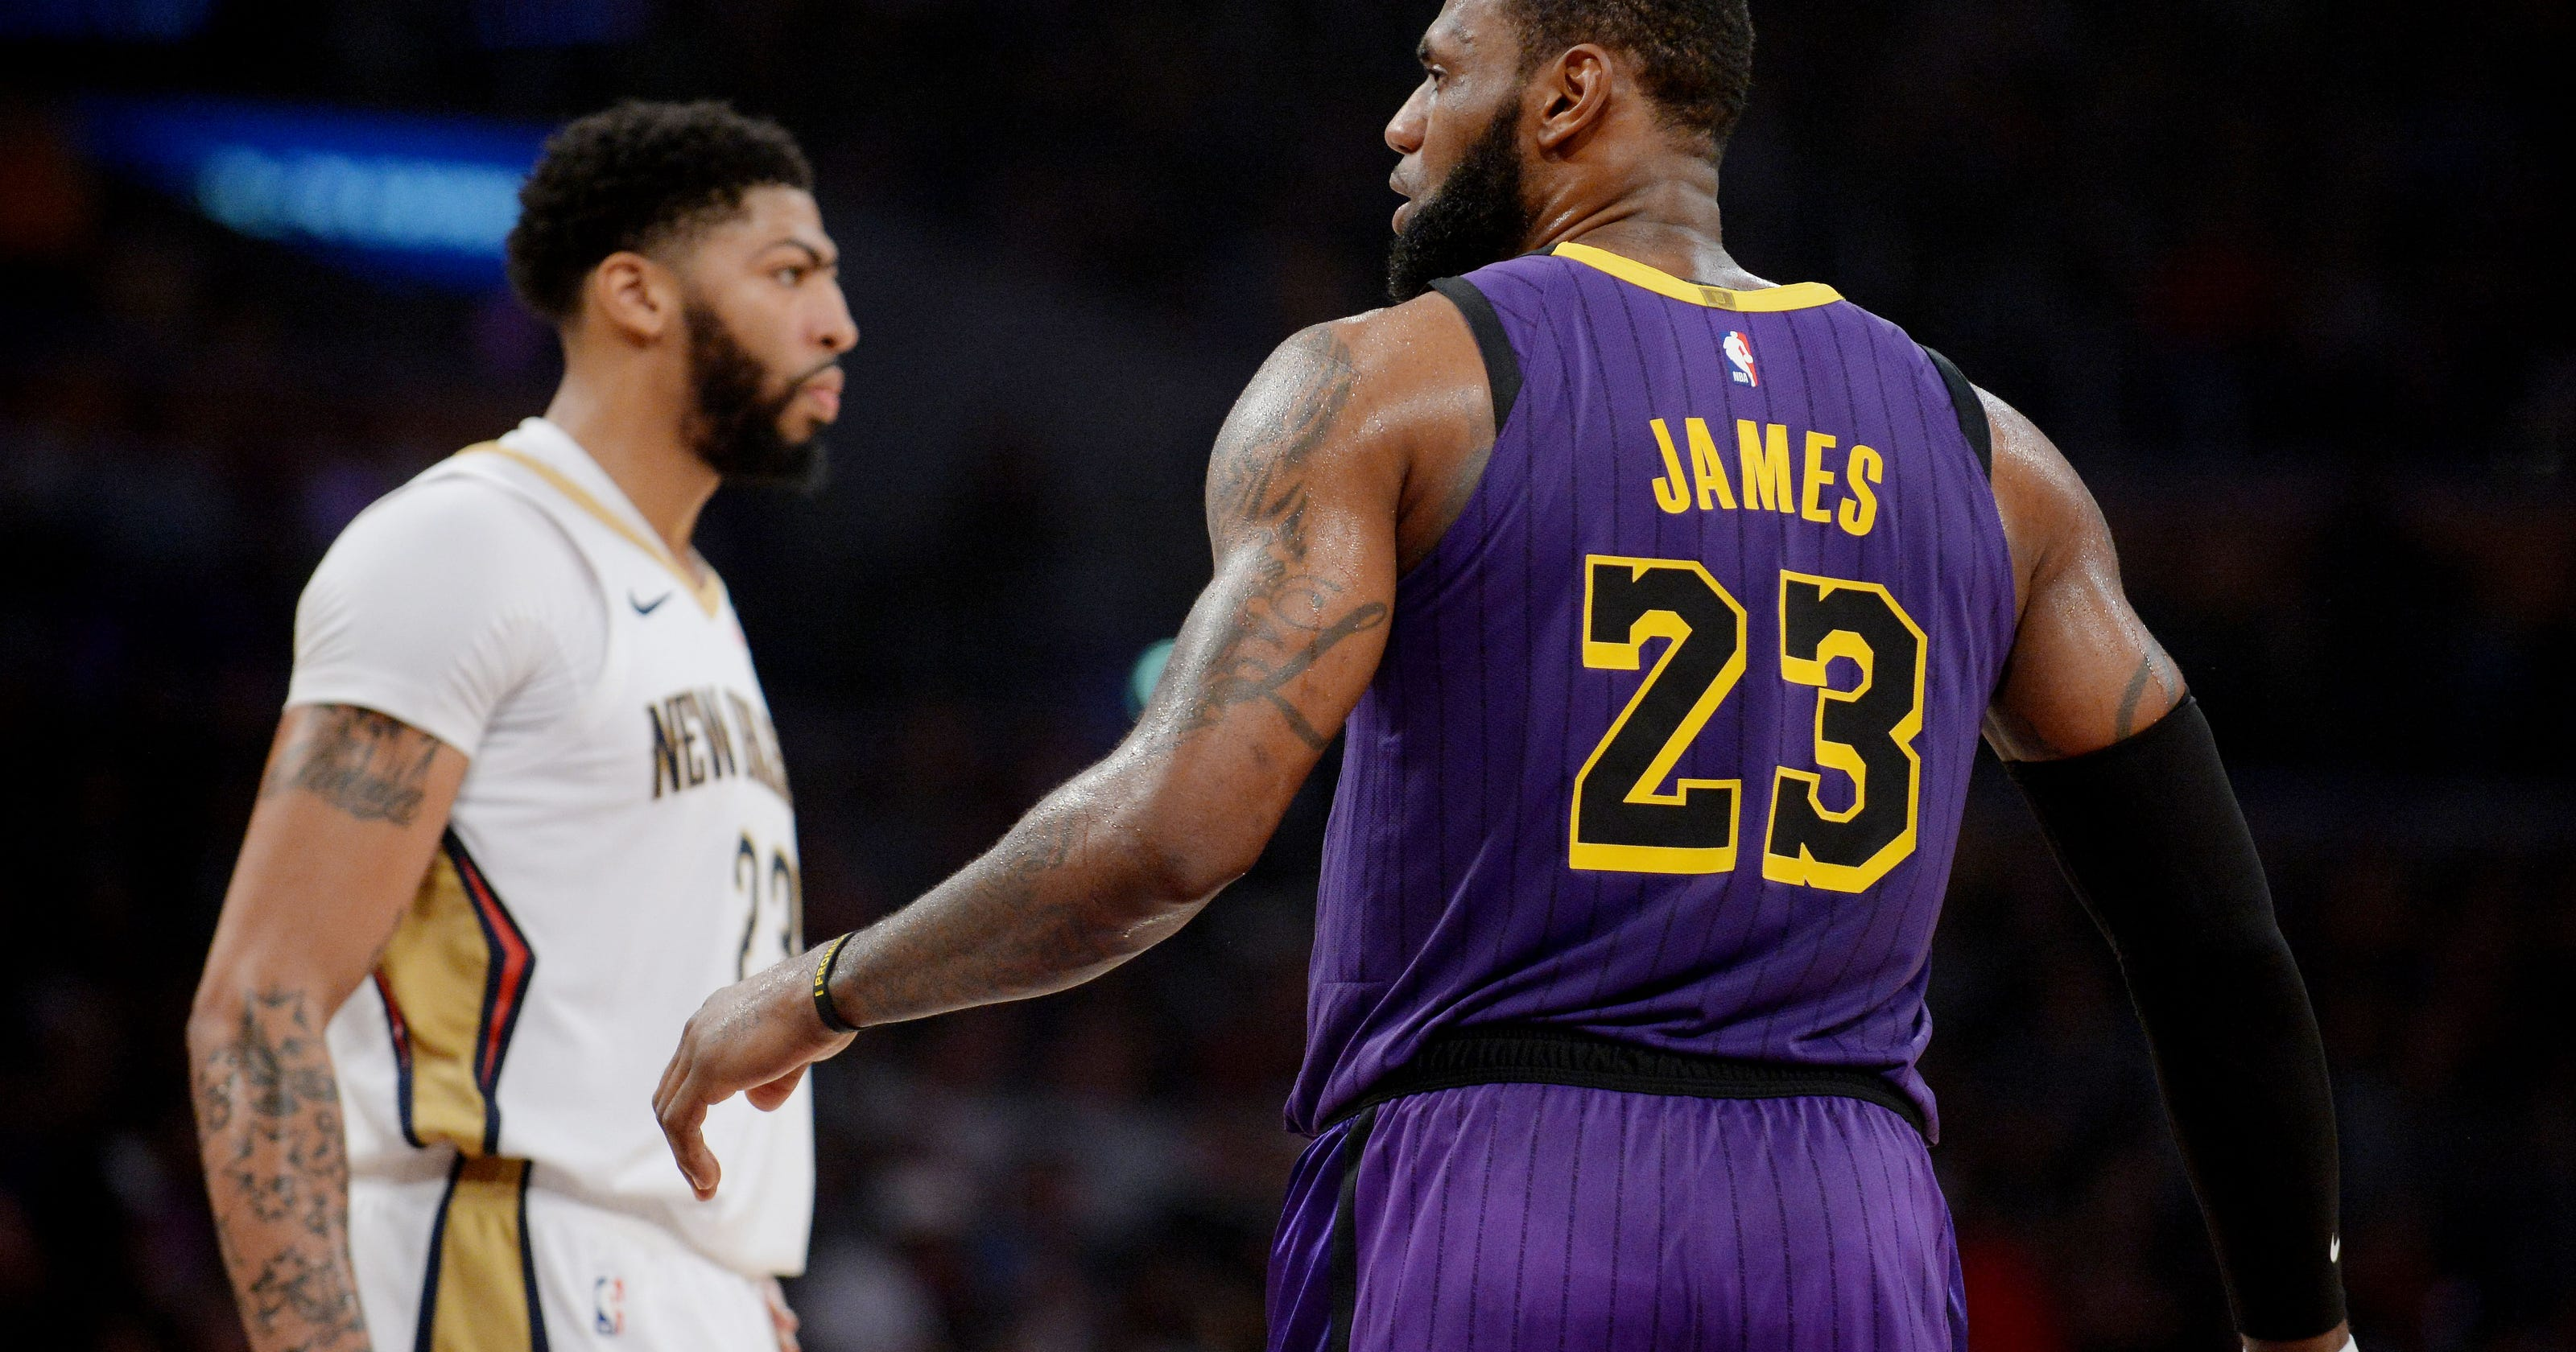 timeless design 4c465 072d2 LeBron James gives Lakers jersey No. 23 to Anthony Davis ...